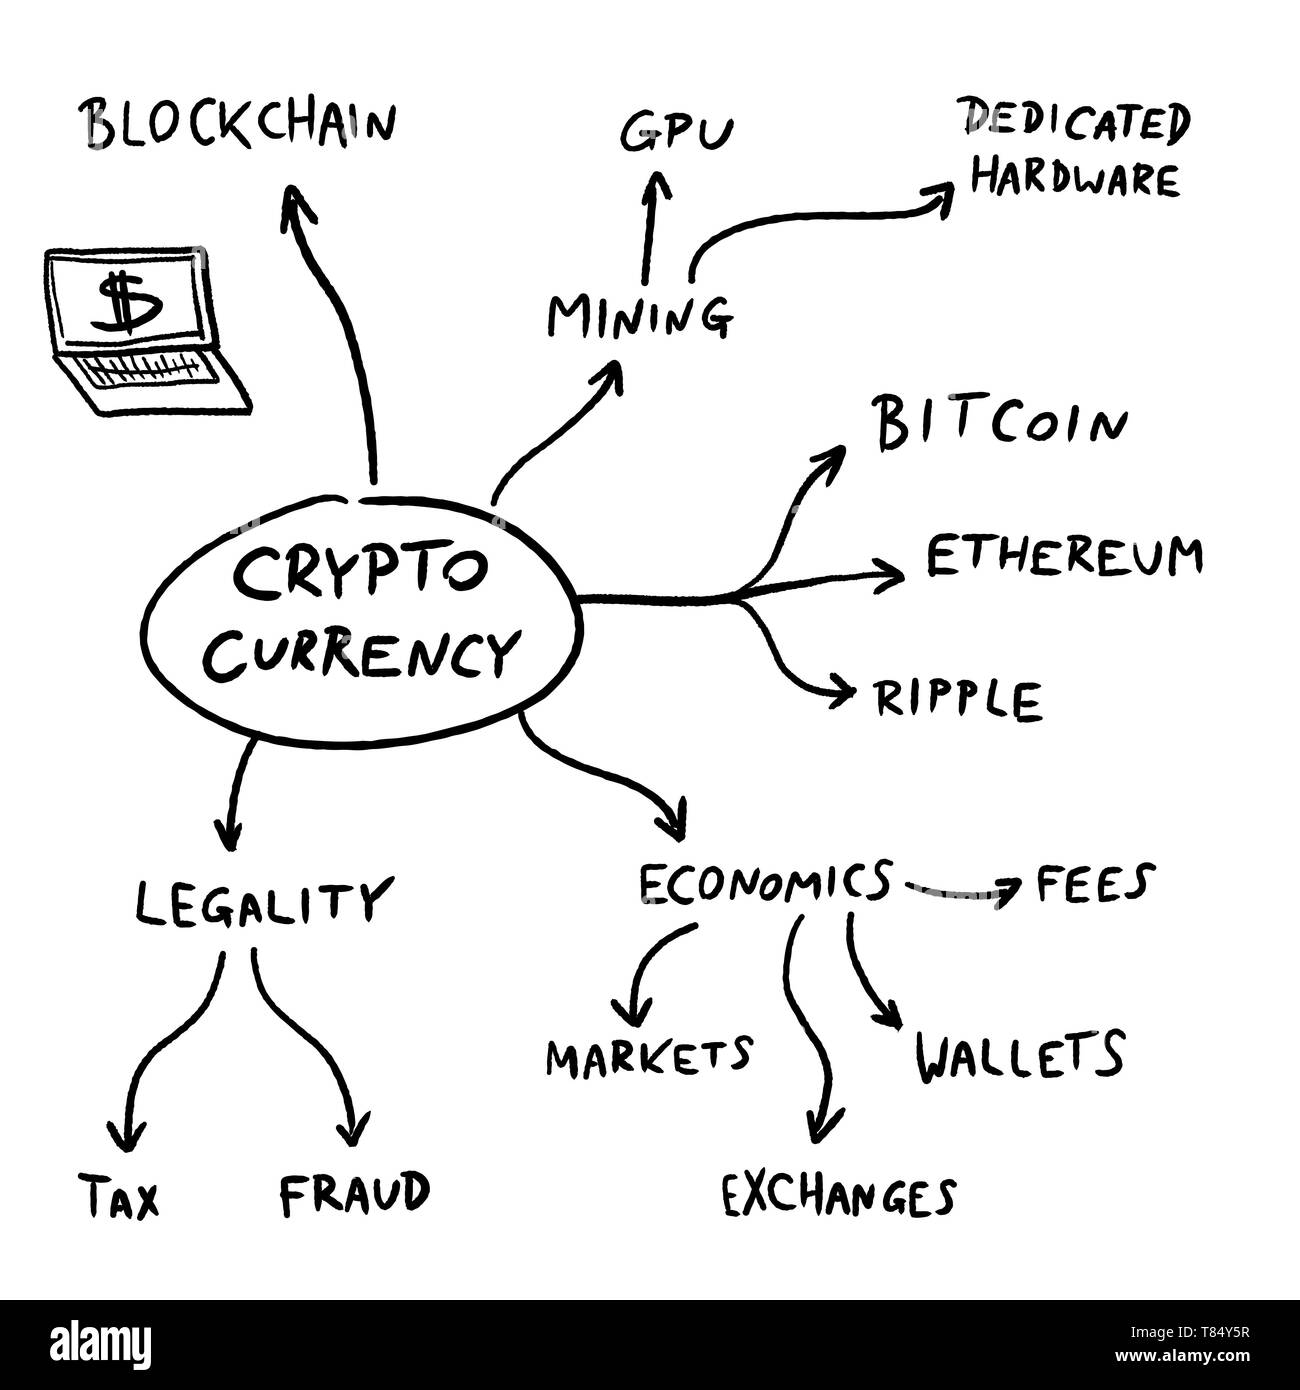 Crypto currency mind map - blockchain business problems and issues chart. Vector graphics. - Stock Vector